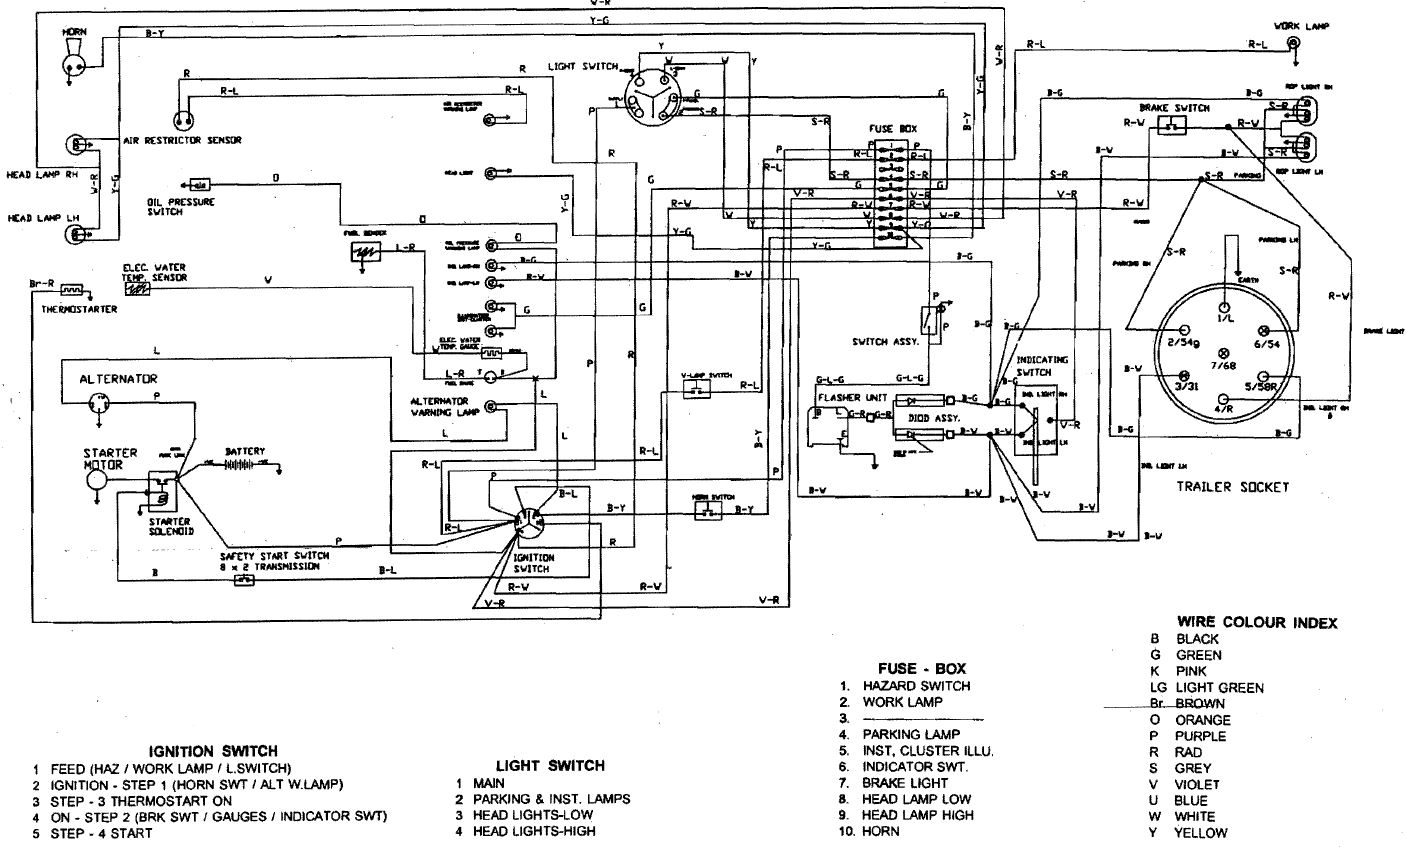 20158463319_b82d524c3d_o ignition switch wiring diagram  at eliteediting.co